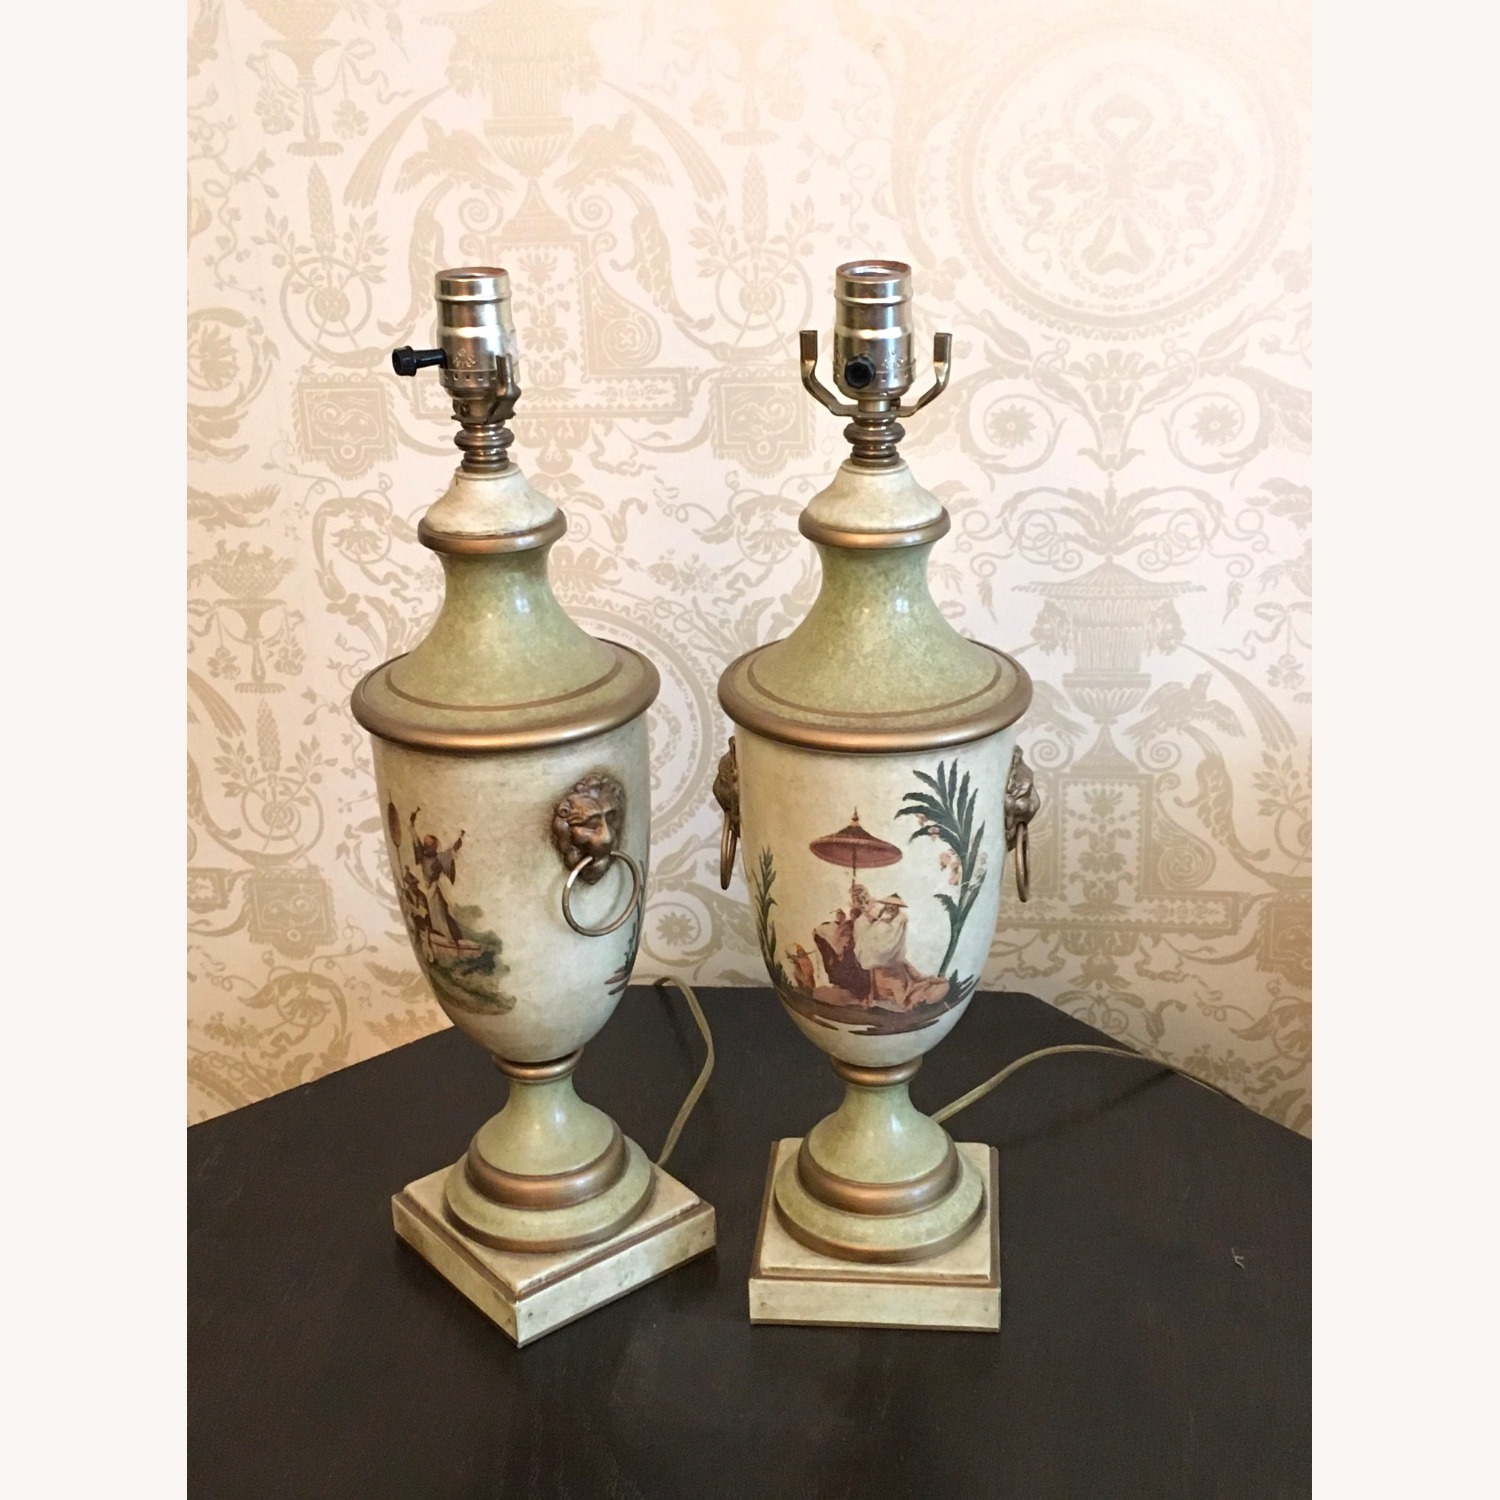 Pair of Hand Painted Asian Theme Toleware Lamps - image-1